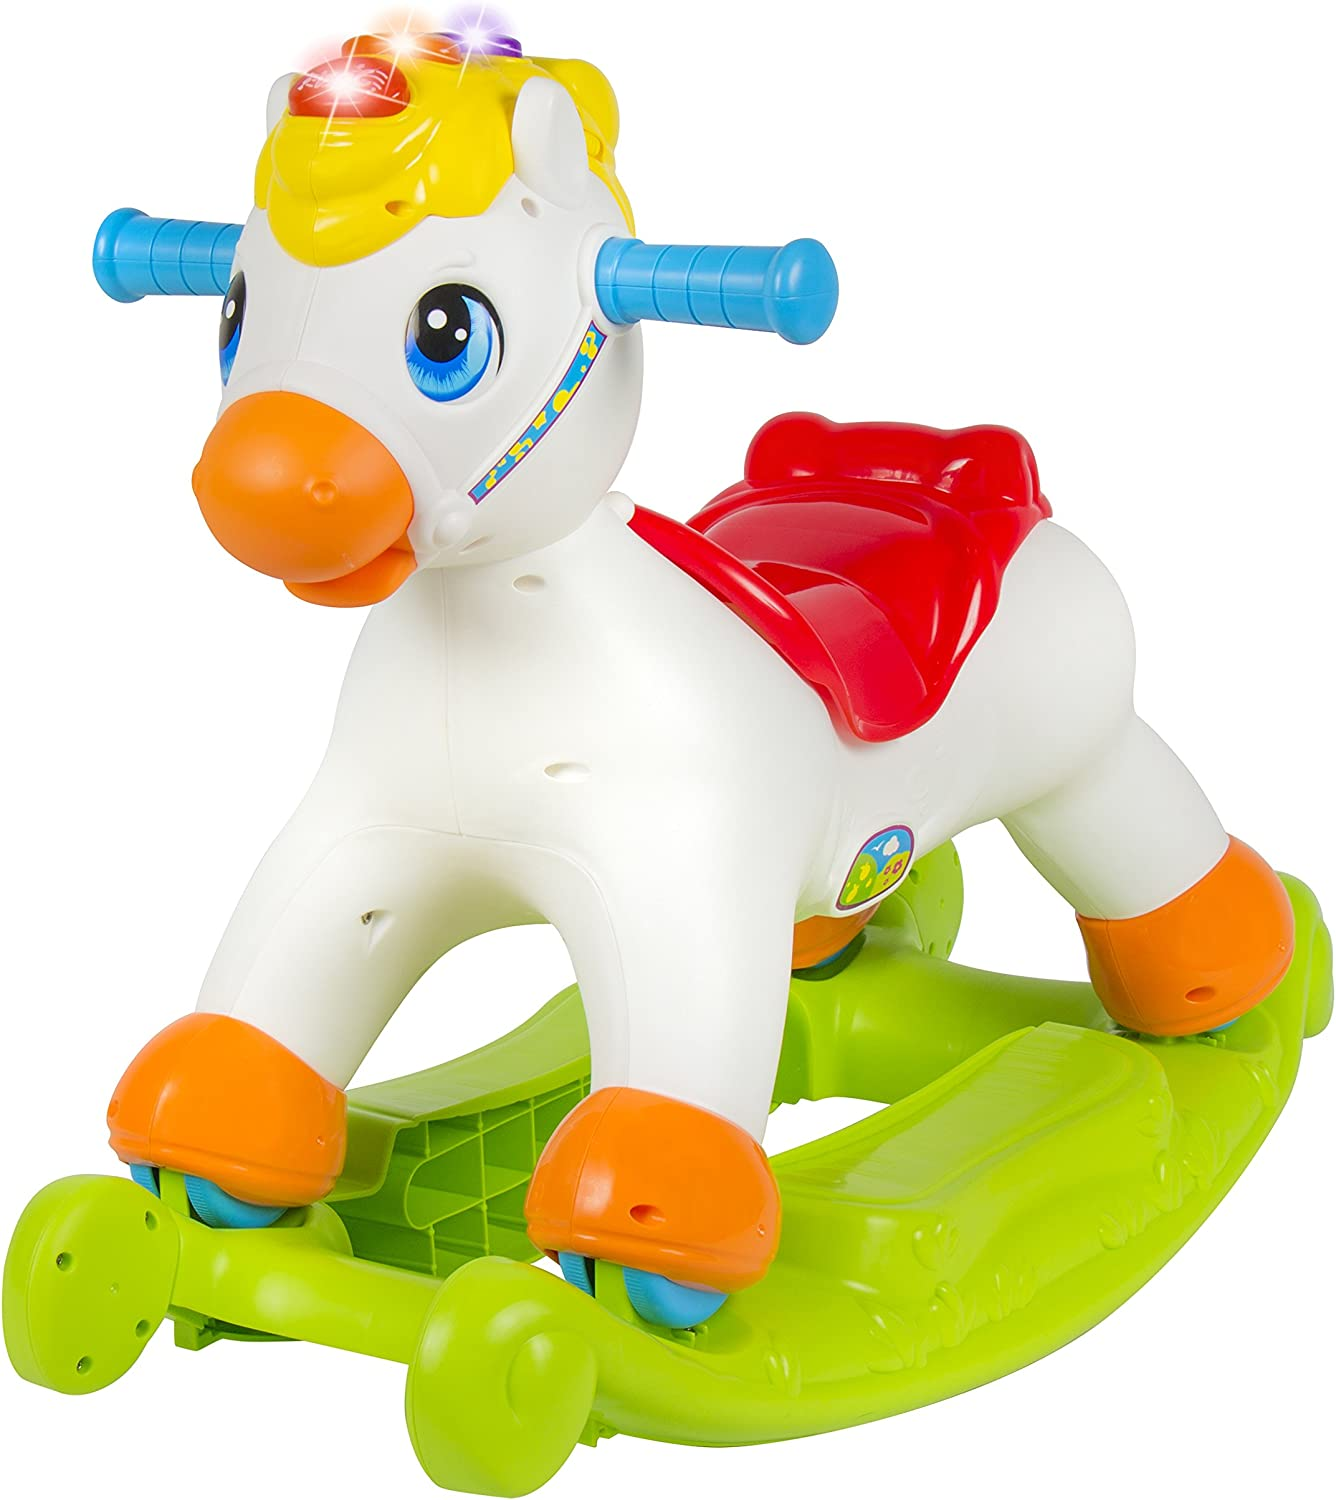 Top 10 Best Rocking Horse Toy (2020 Reviews & Guide) 5